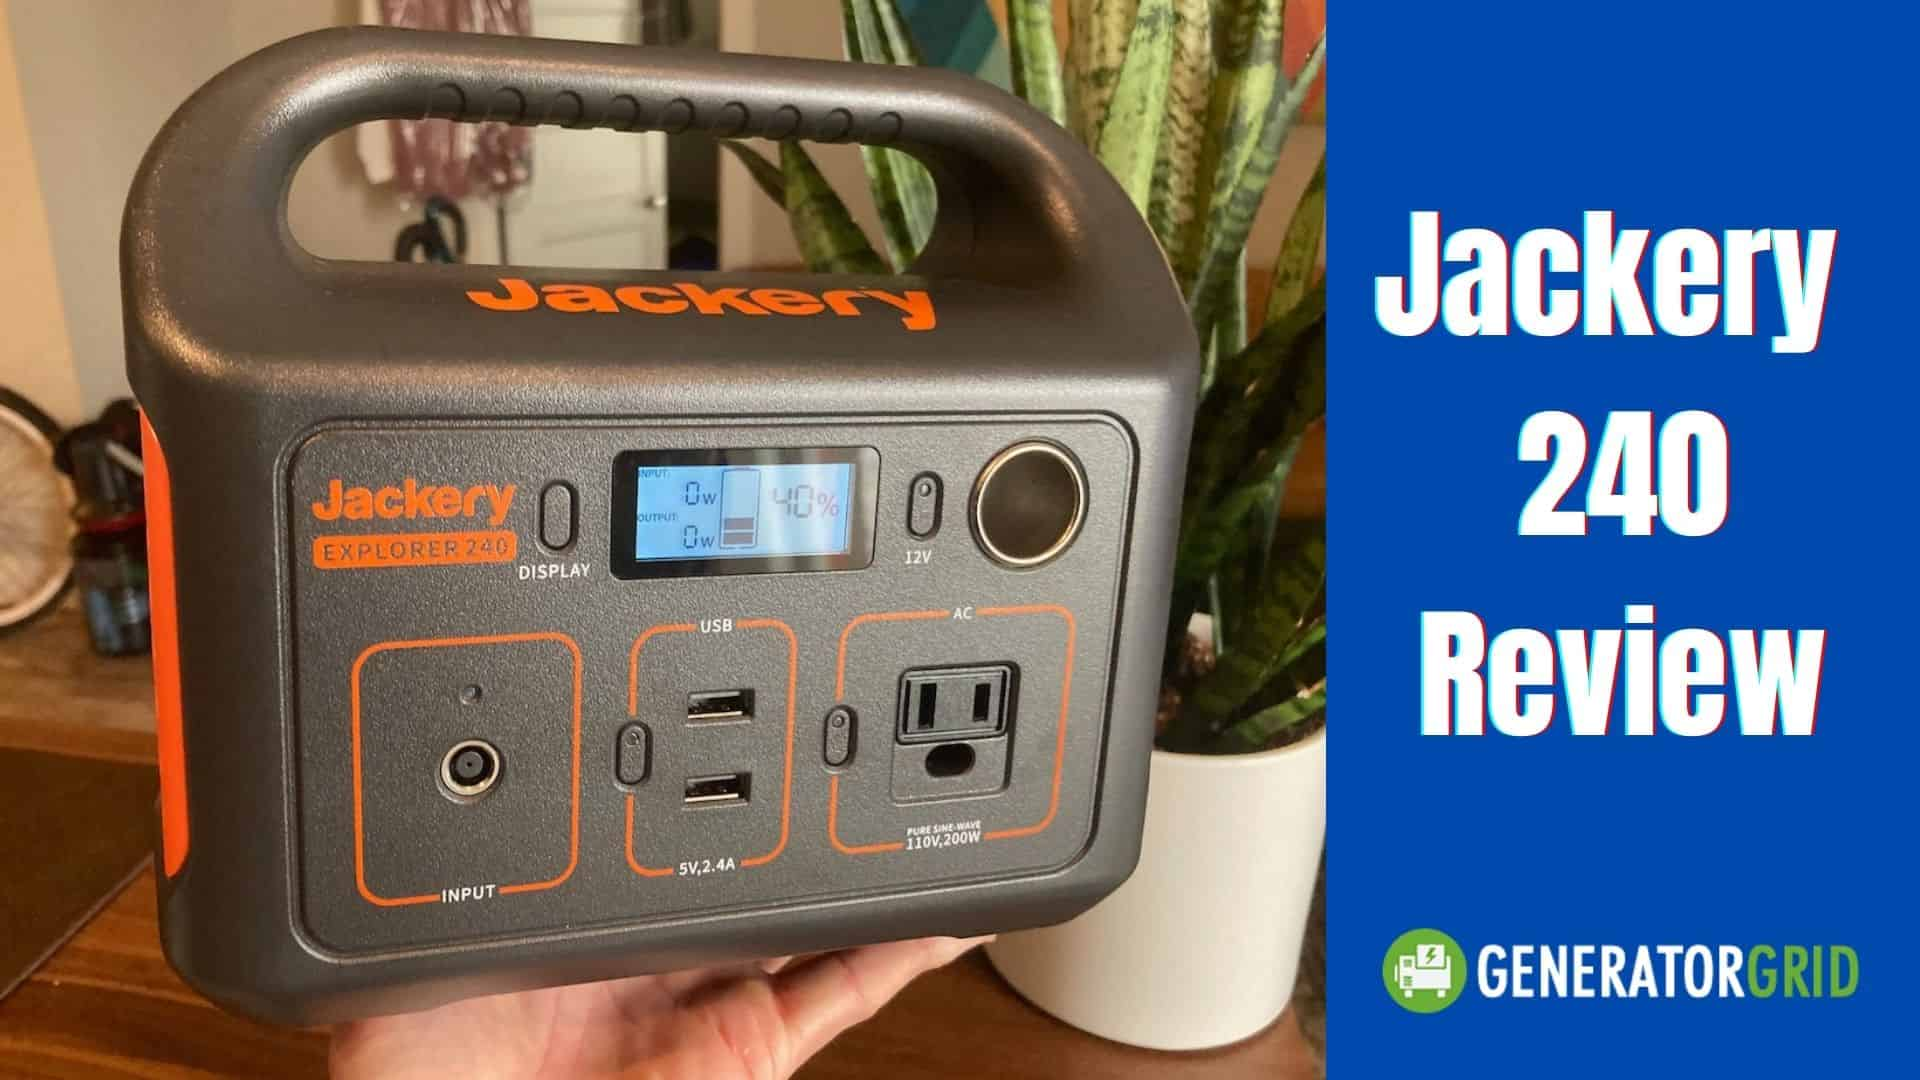 Jackery 240 Review